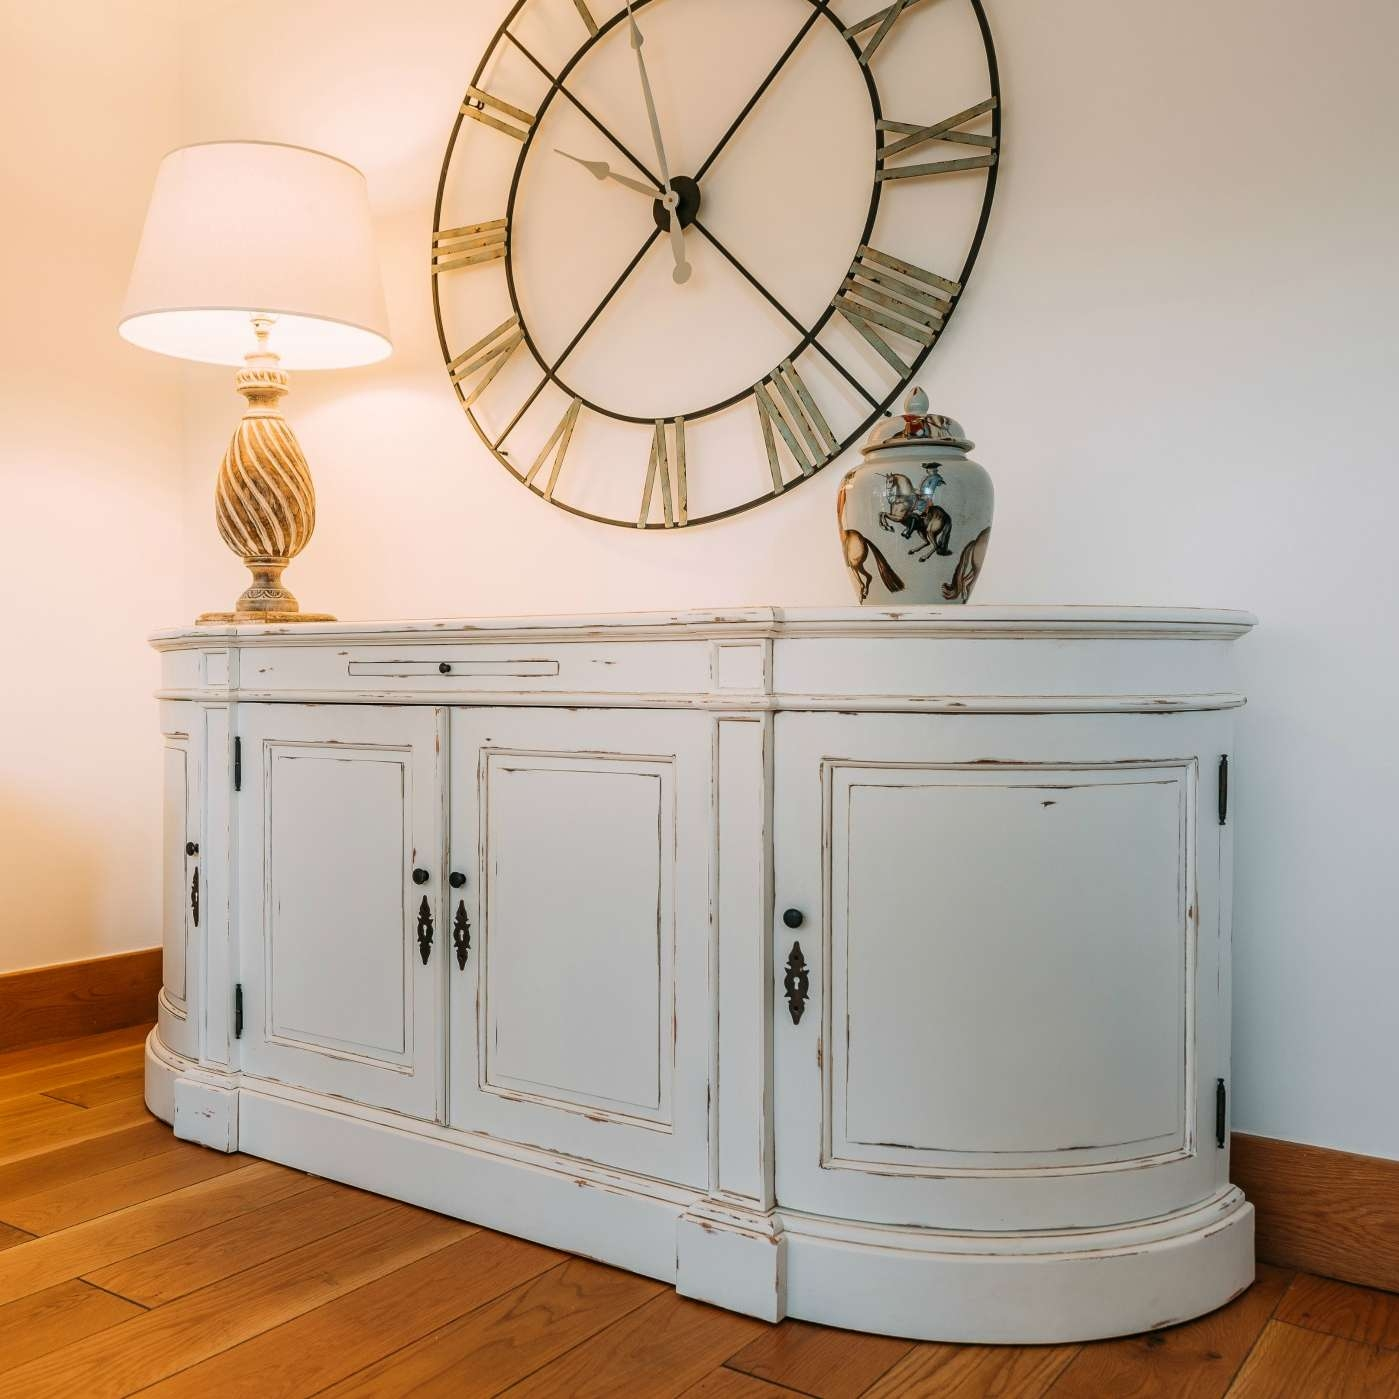 Aged French Distressed White Large Sideboard Furniture – La Maison Throughout French Sideboards (View 5 of 20)